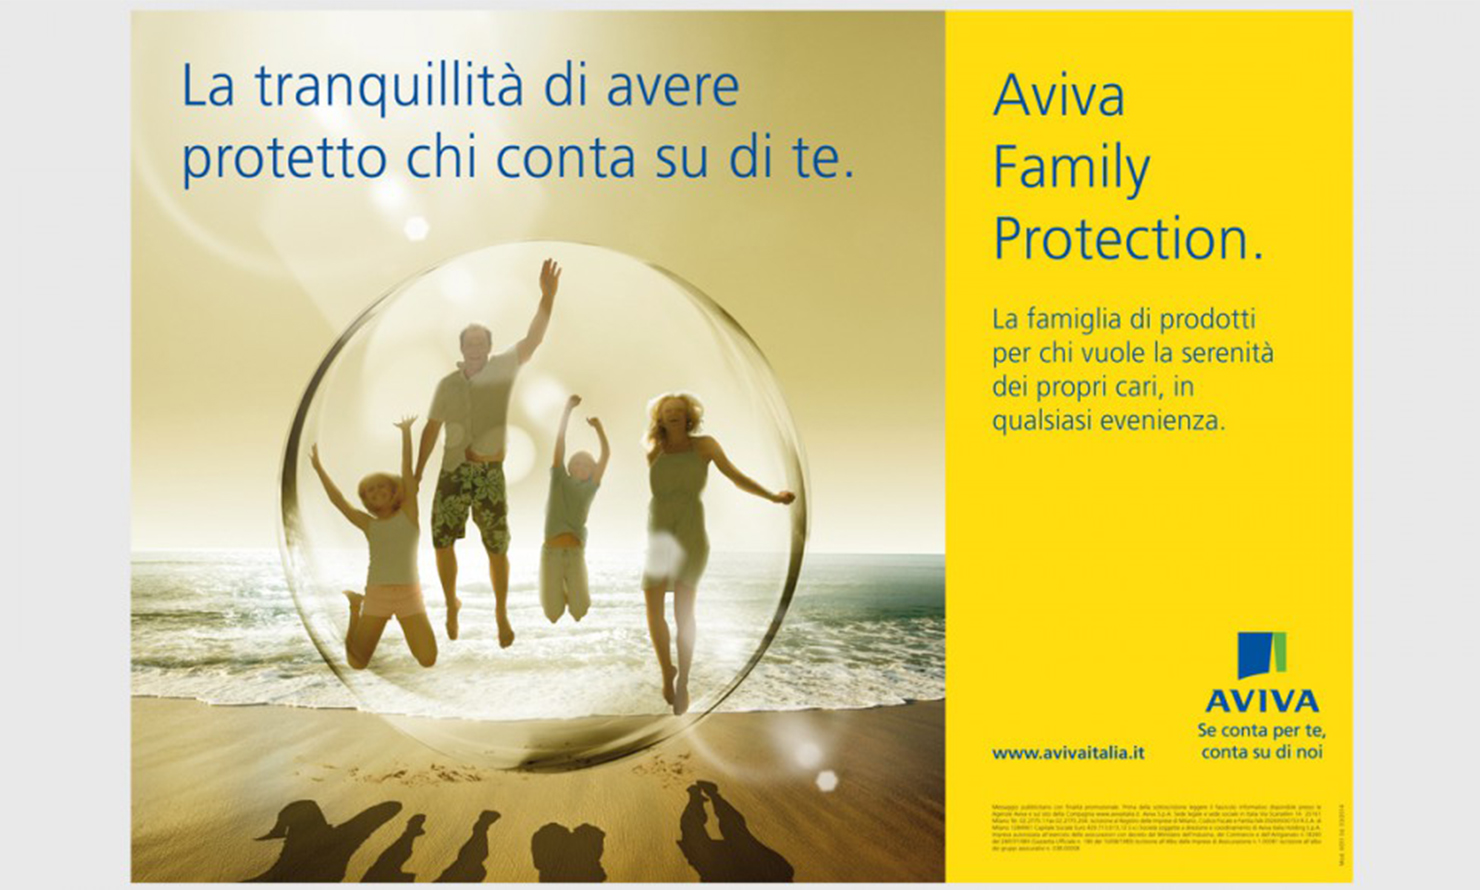 https://www.kubelibre.com/uploads/Slider-work-tutti-clienti/aviva-family-protection-1.jpg